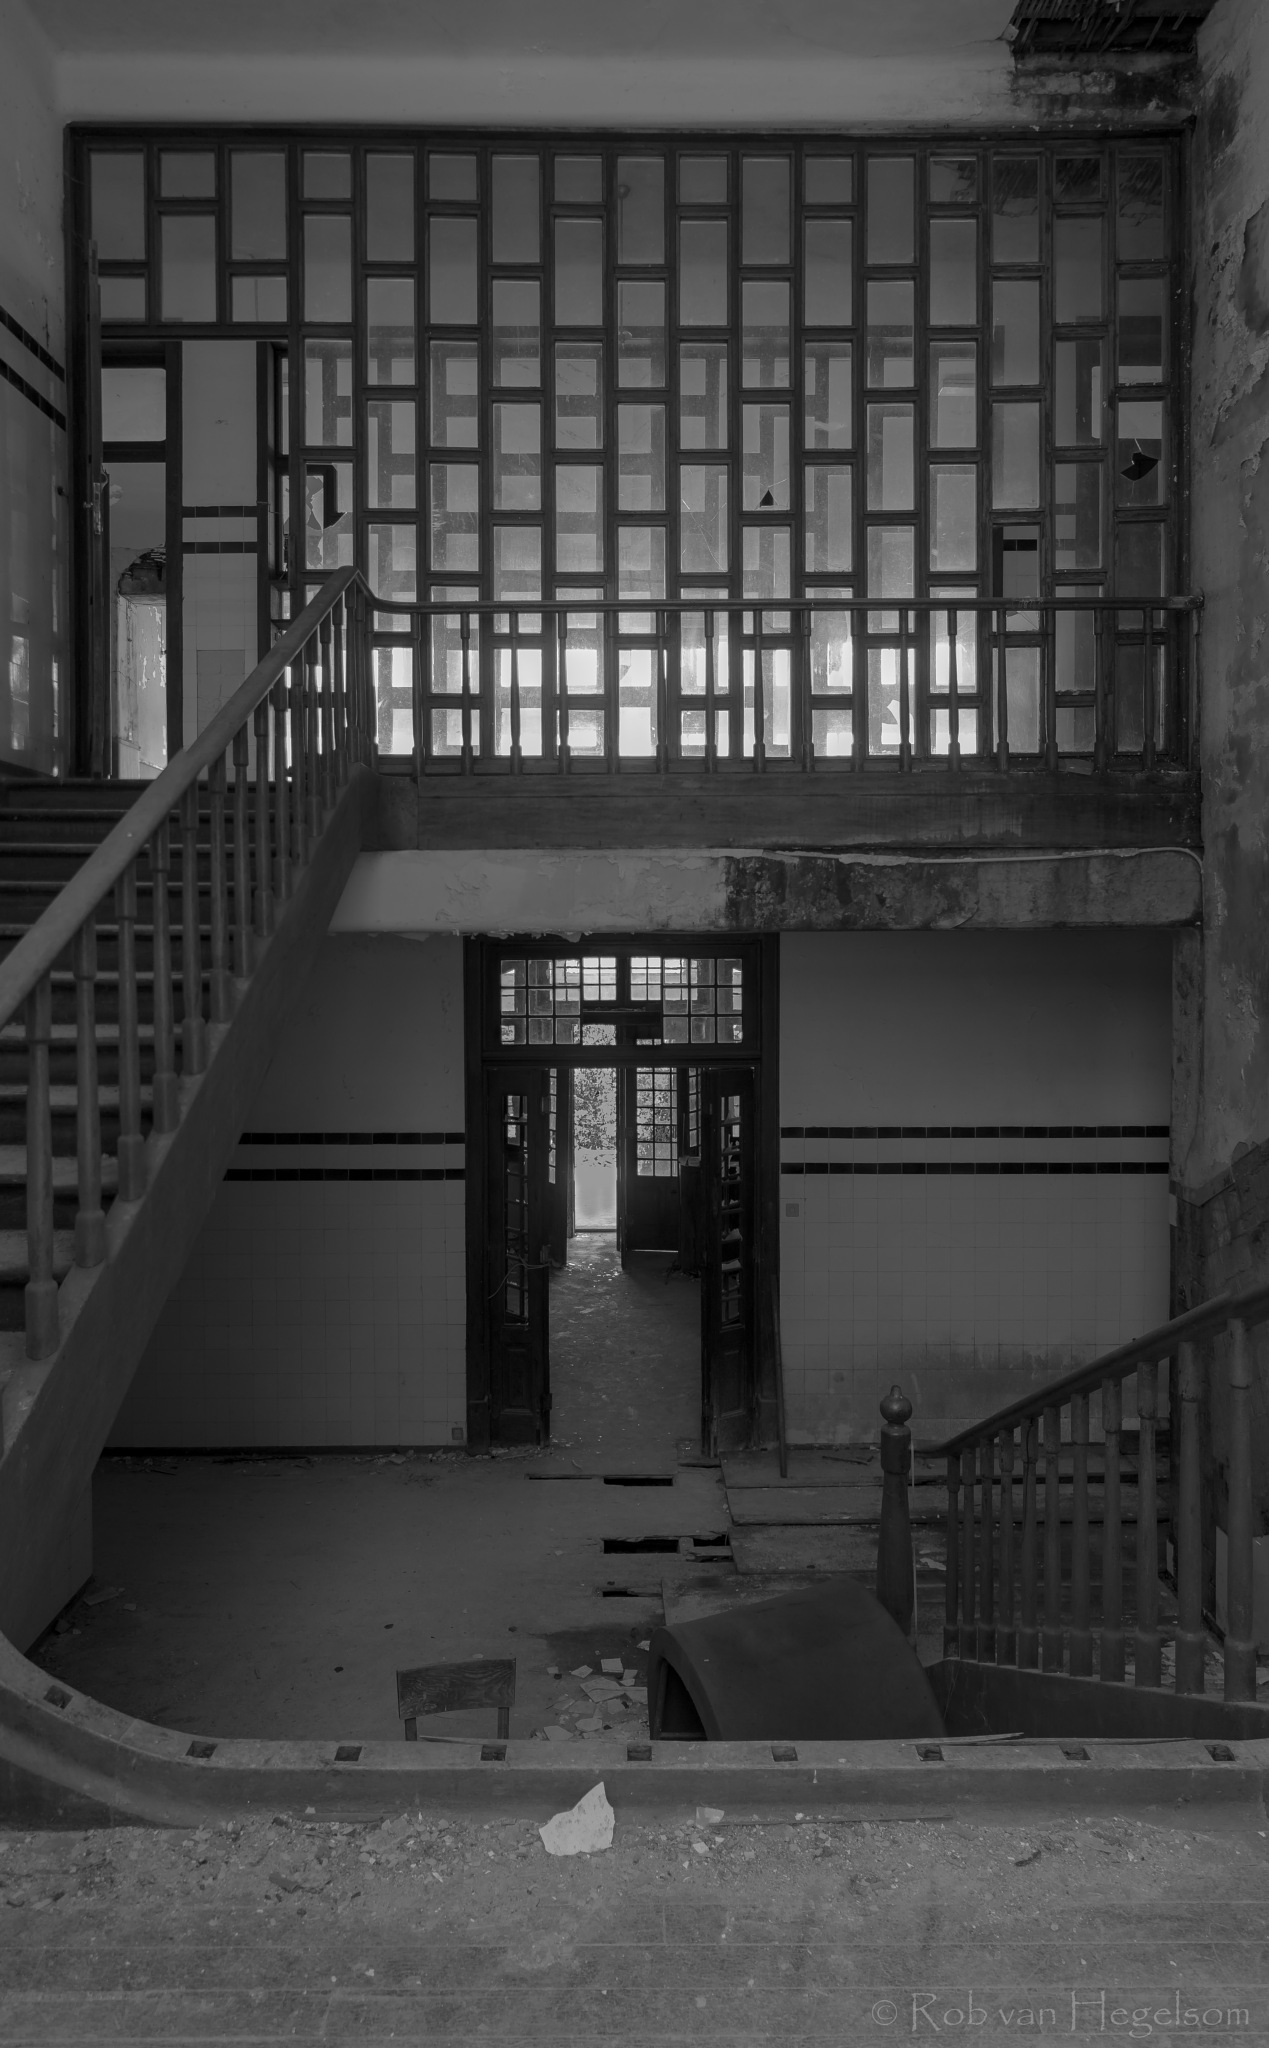 The hallway by rvanhegelsom